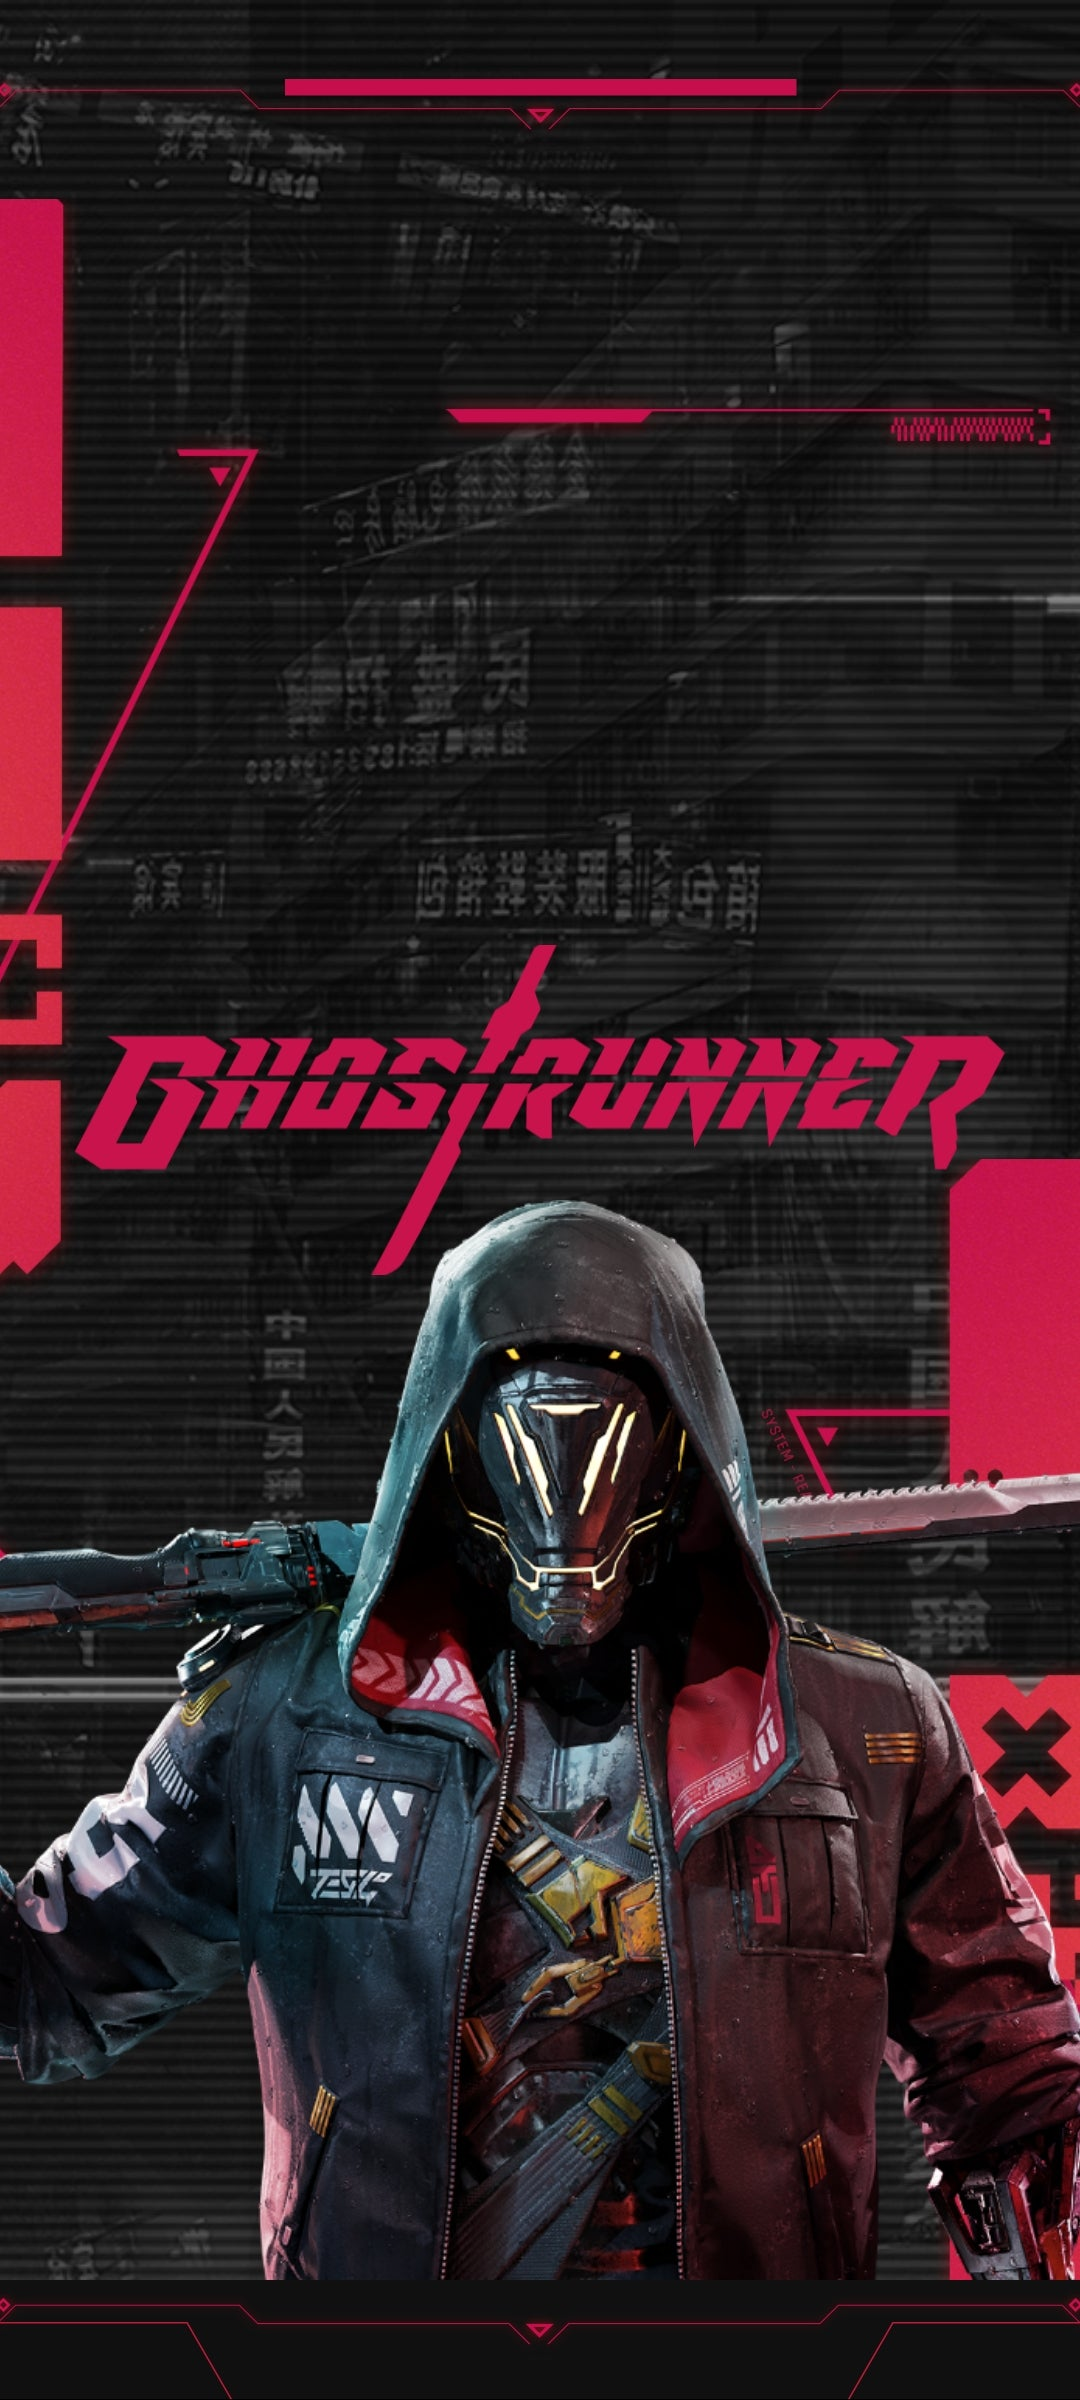 ghostrunner phone wallpaper